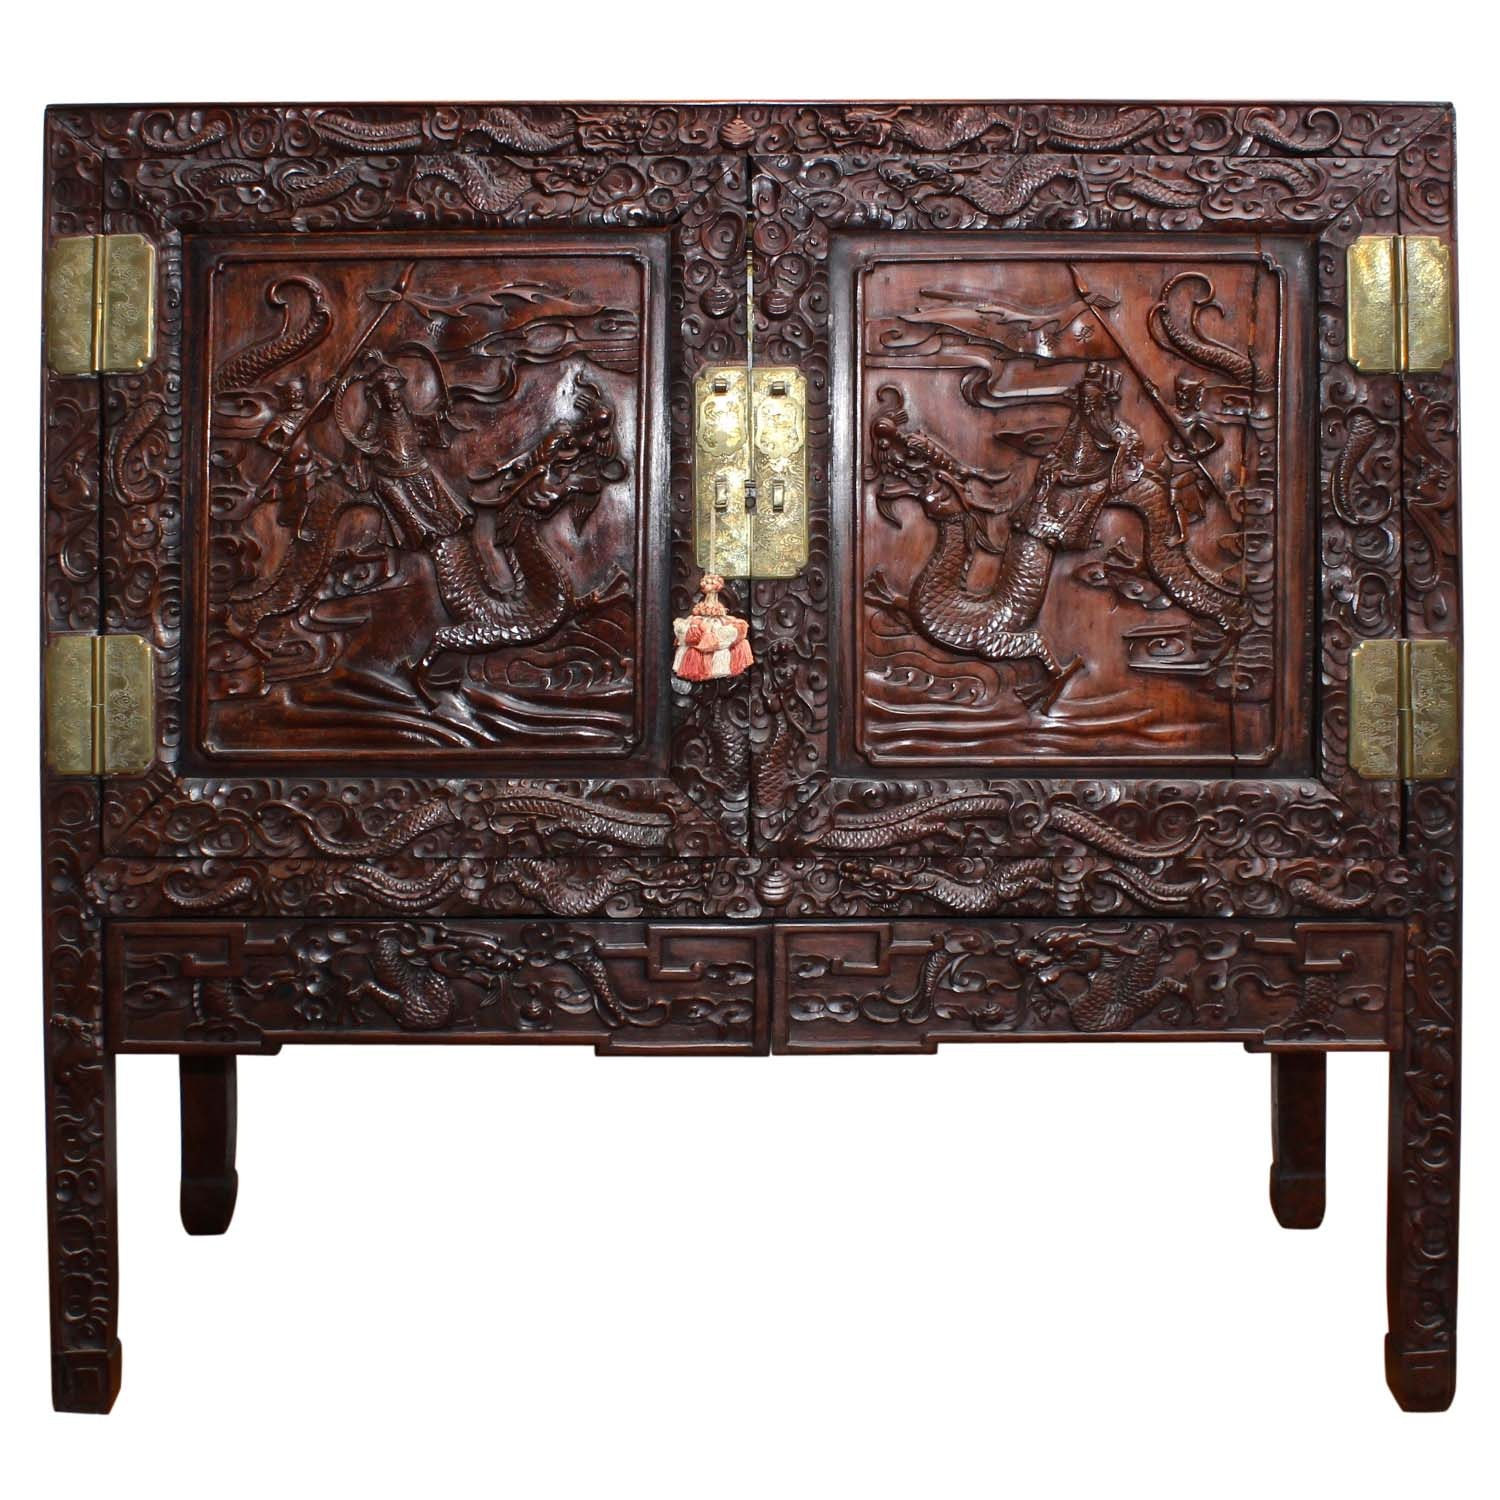 Chinese Carved Wooden Chest on Stand, 20th Century